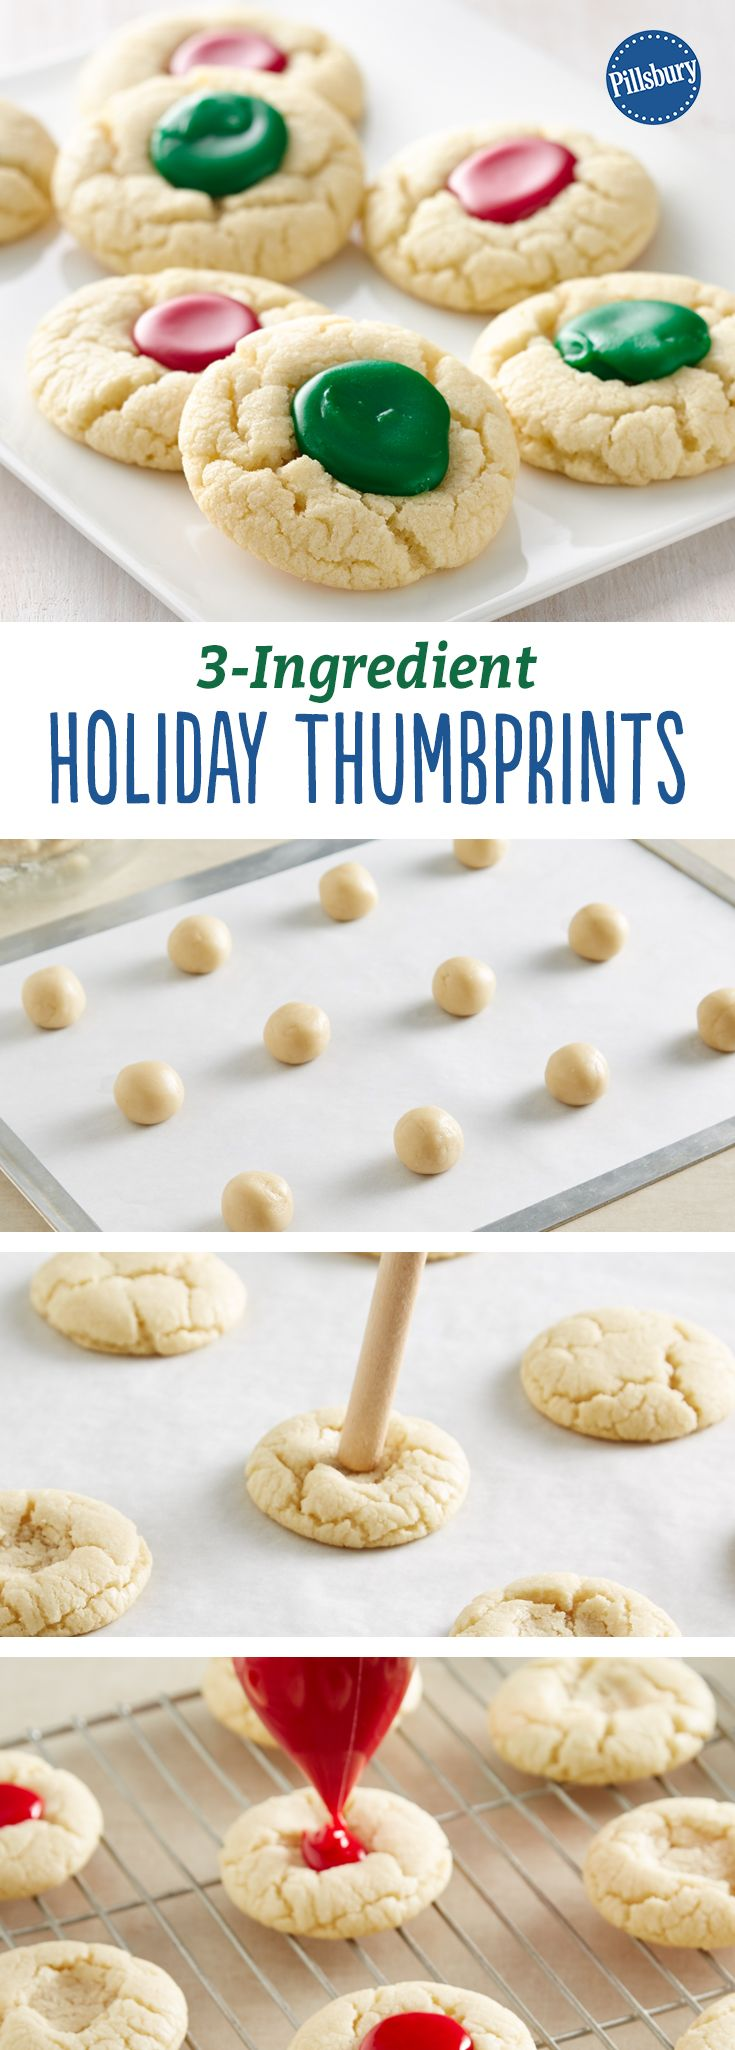 3-Ingredient Holiday Thumbprints: Kids will have fun filling these easy thumbprint cookies with colored icing.